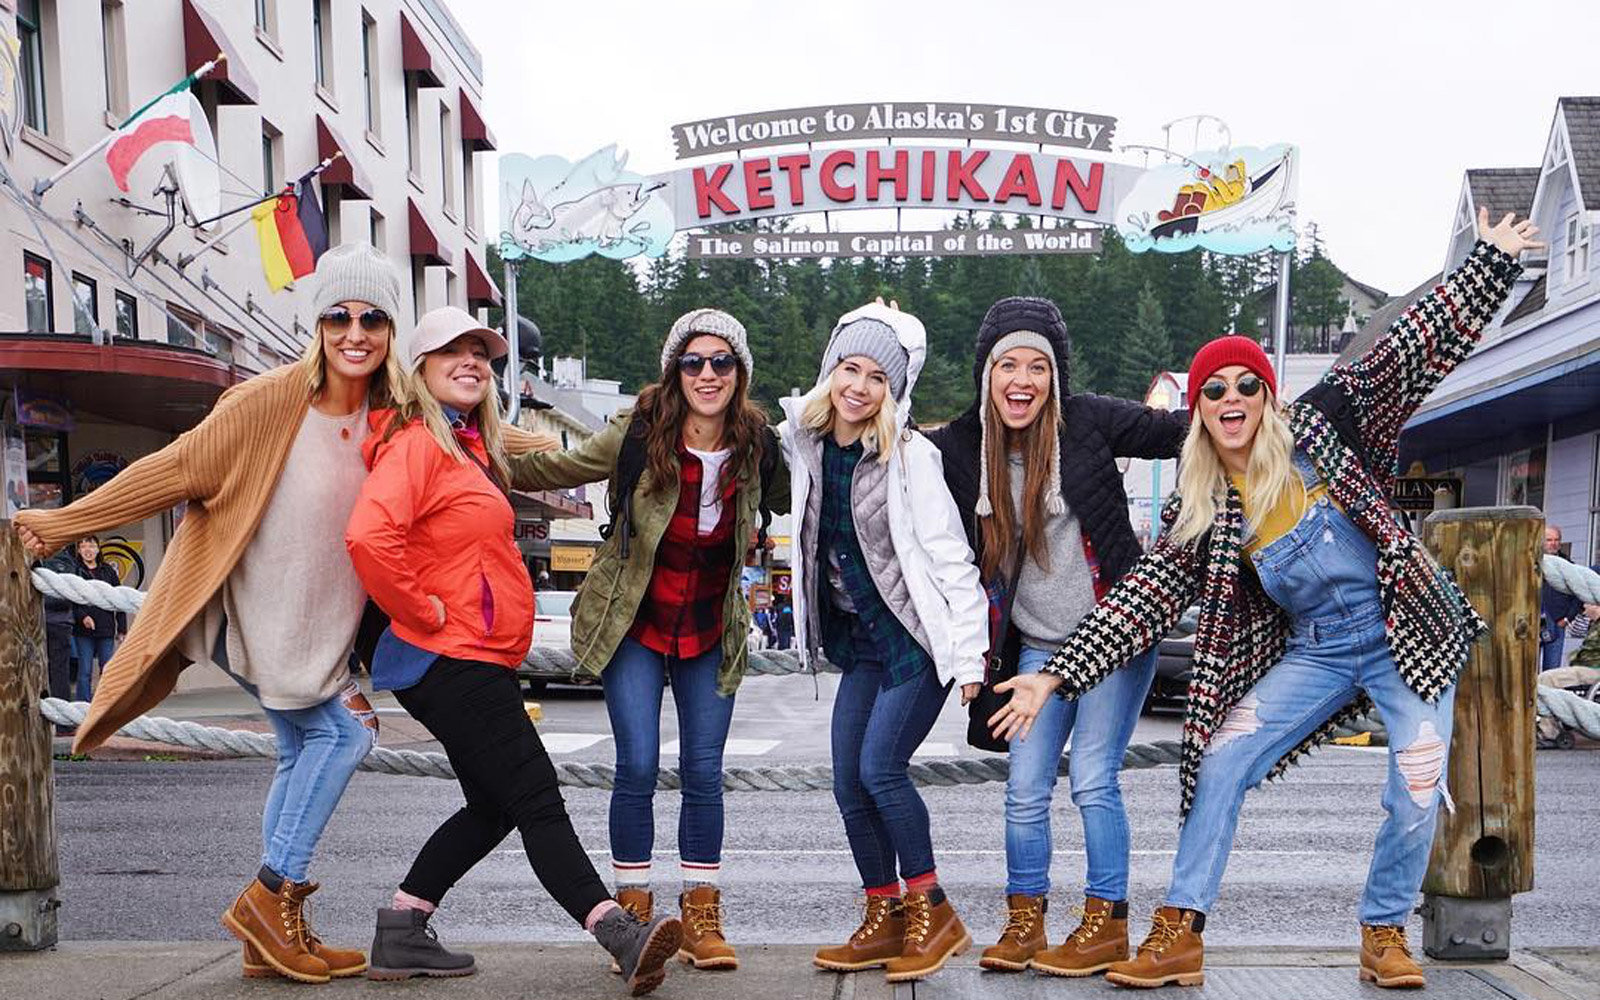 Julianne Hough and her friends in Ketchikan